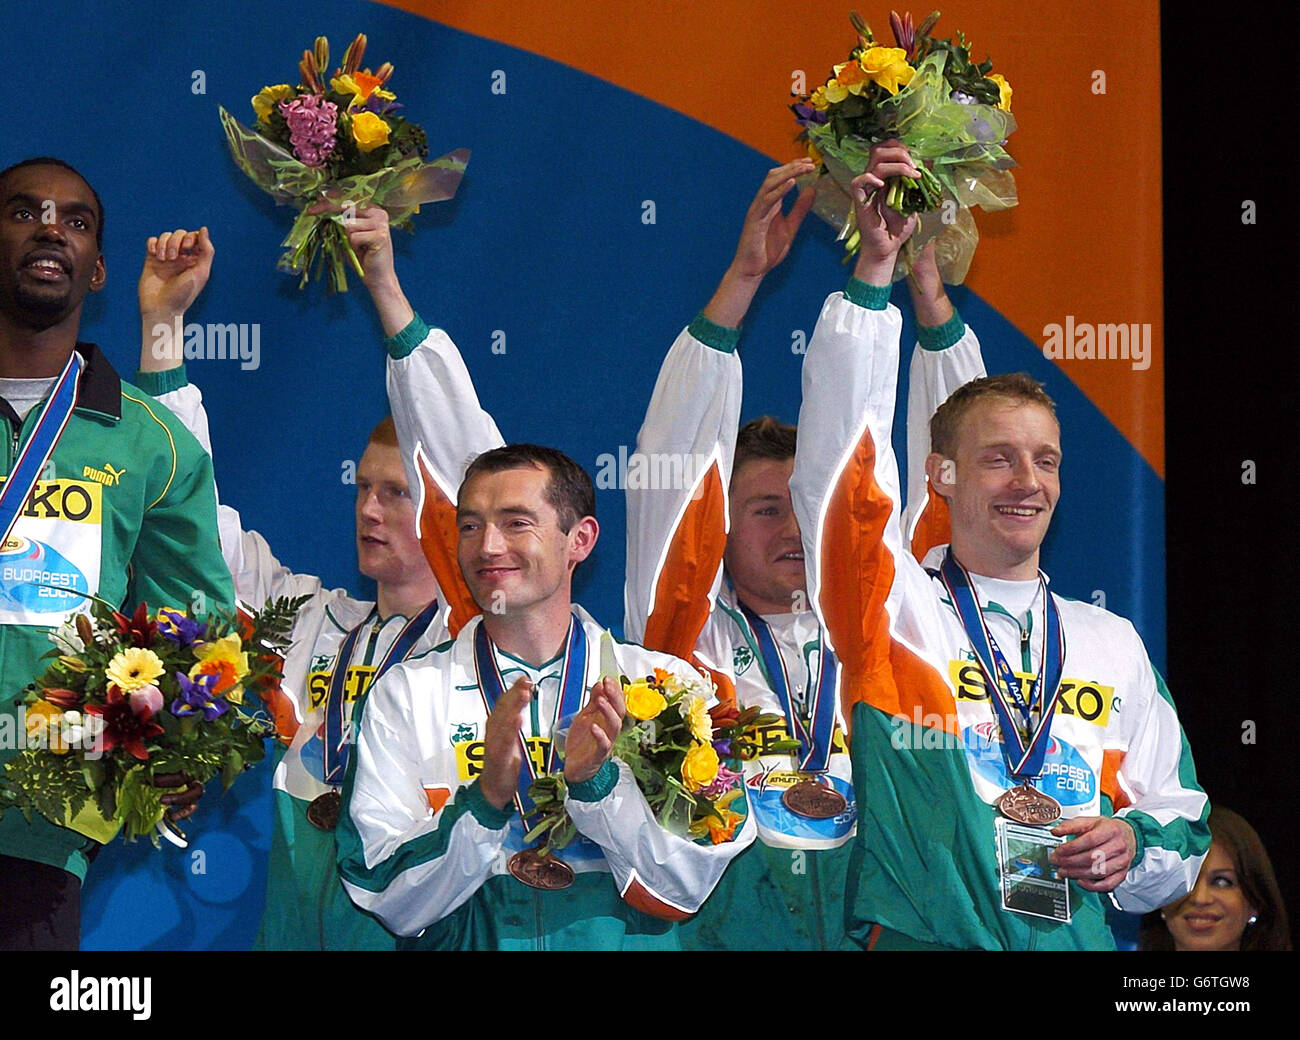 The Ireland Relay team World Indoor Championships - Stock Image